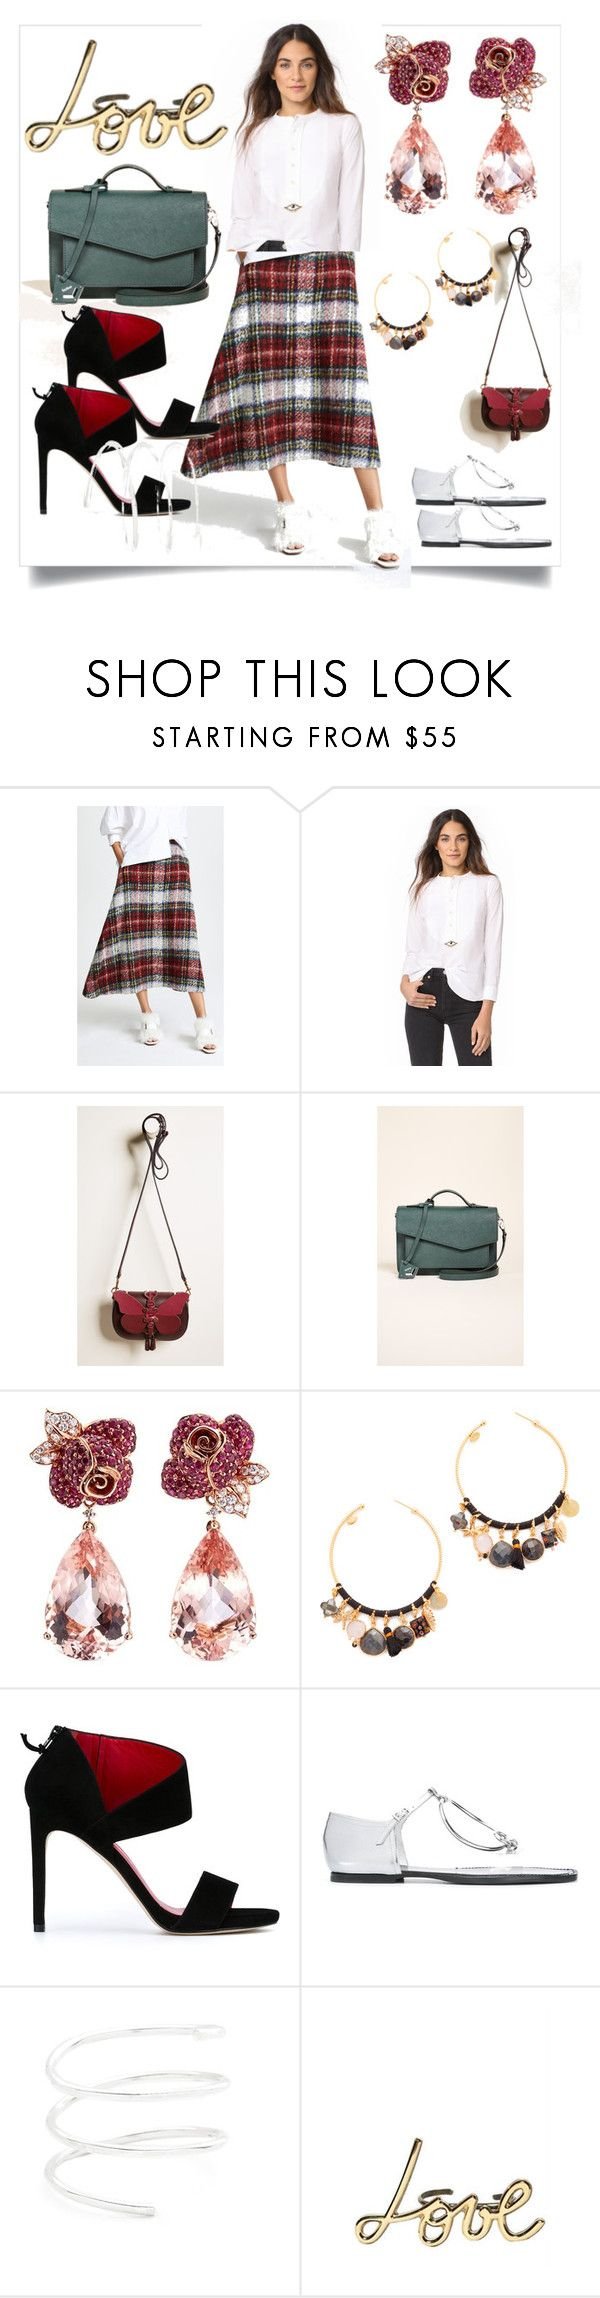 """""""Plaid Mini Skirt..**"""" by purnima0309 ❤ liked on Polyvore featuring pushBUTTON, Figue, Anya Hindmarch, Botkier, Anyallerie, Gas Bijoux, Stuart Weitzman, Maison Margiela, Lanvin and vintage"""